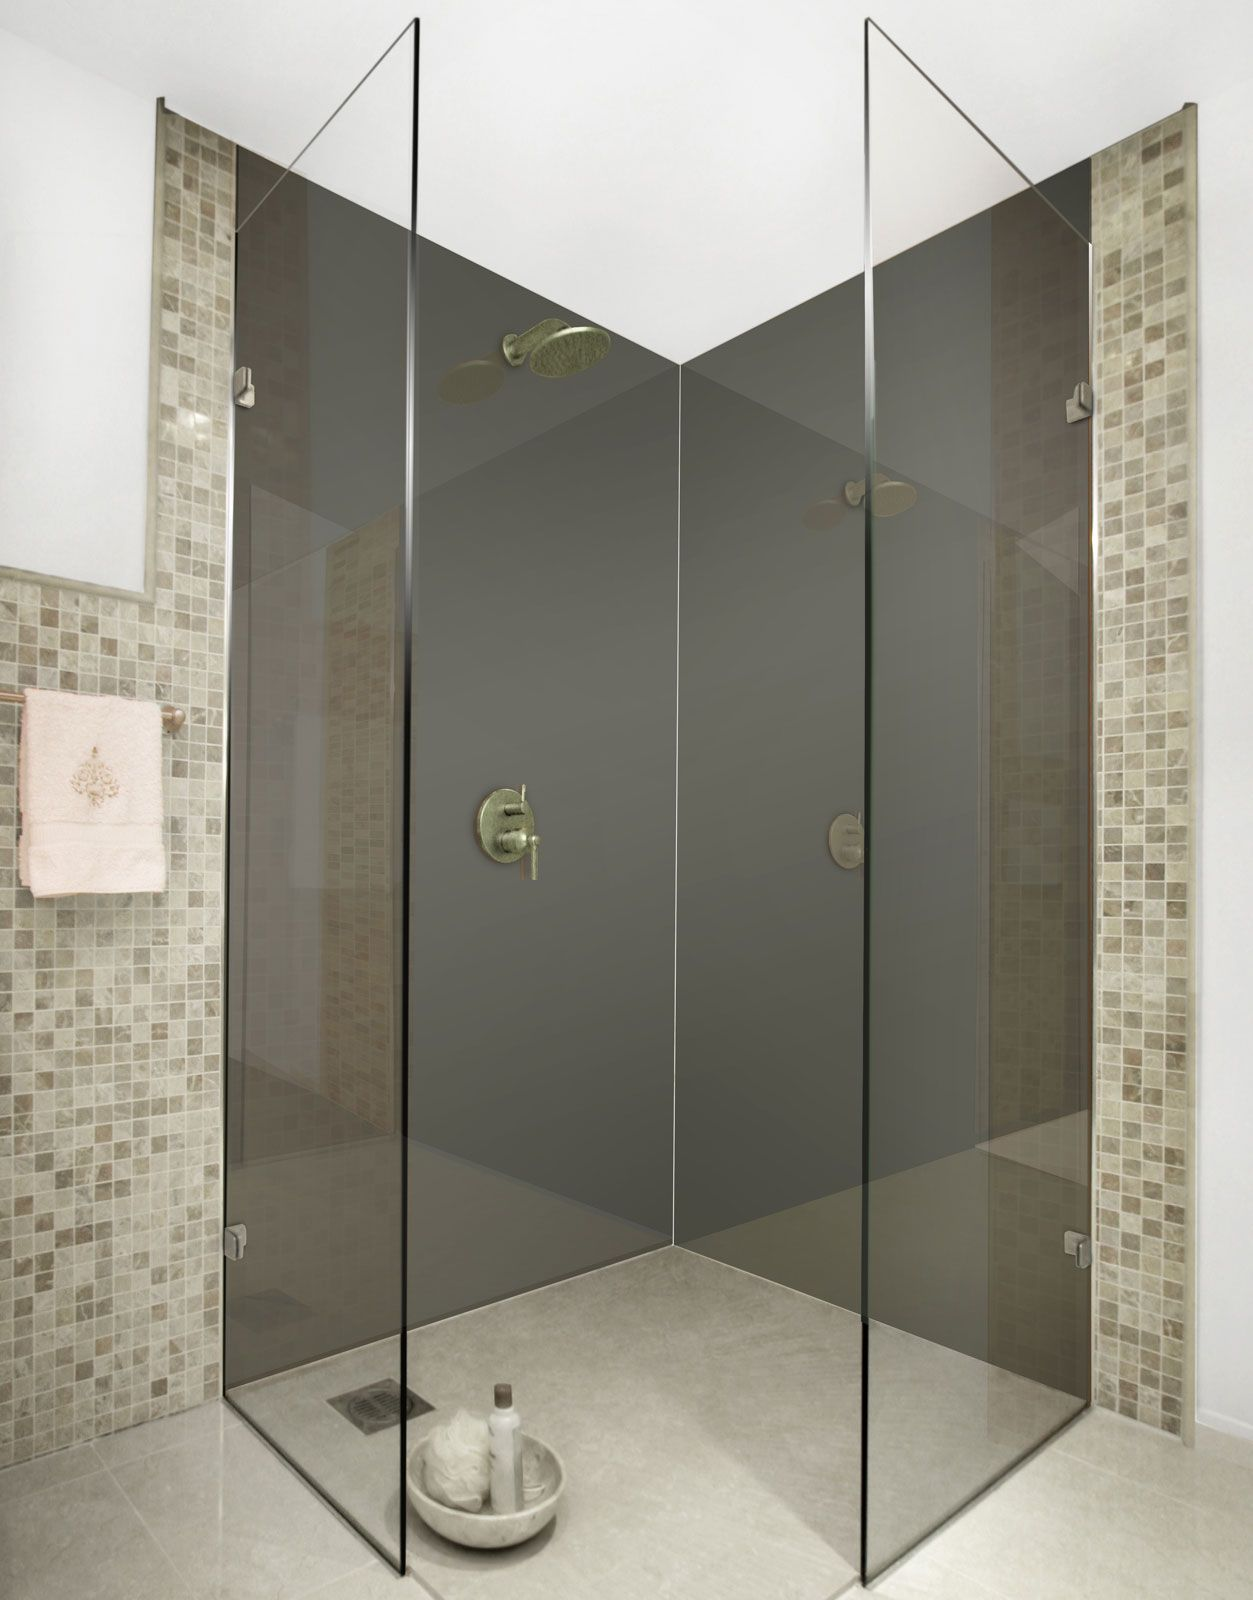 Account Suspended Glass Shower Wall Bathroom Shower Panels Acrylic Wall Panels